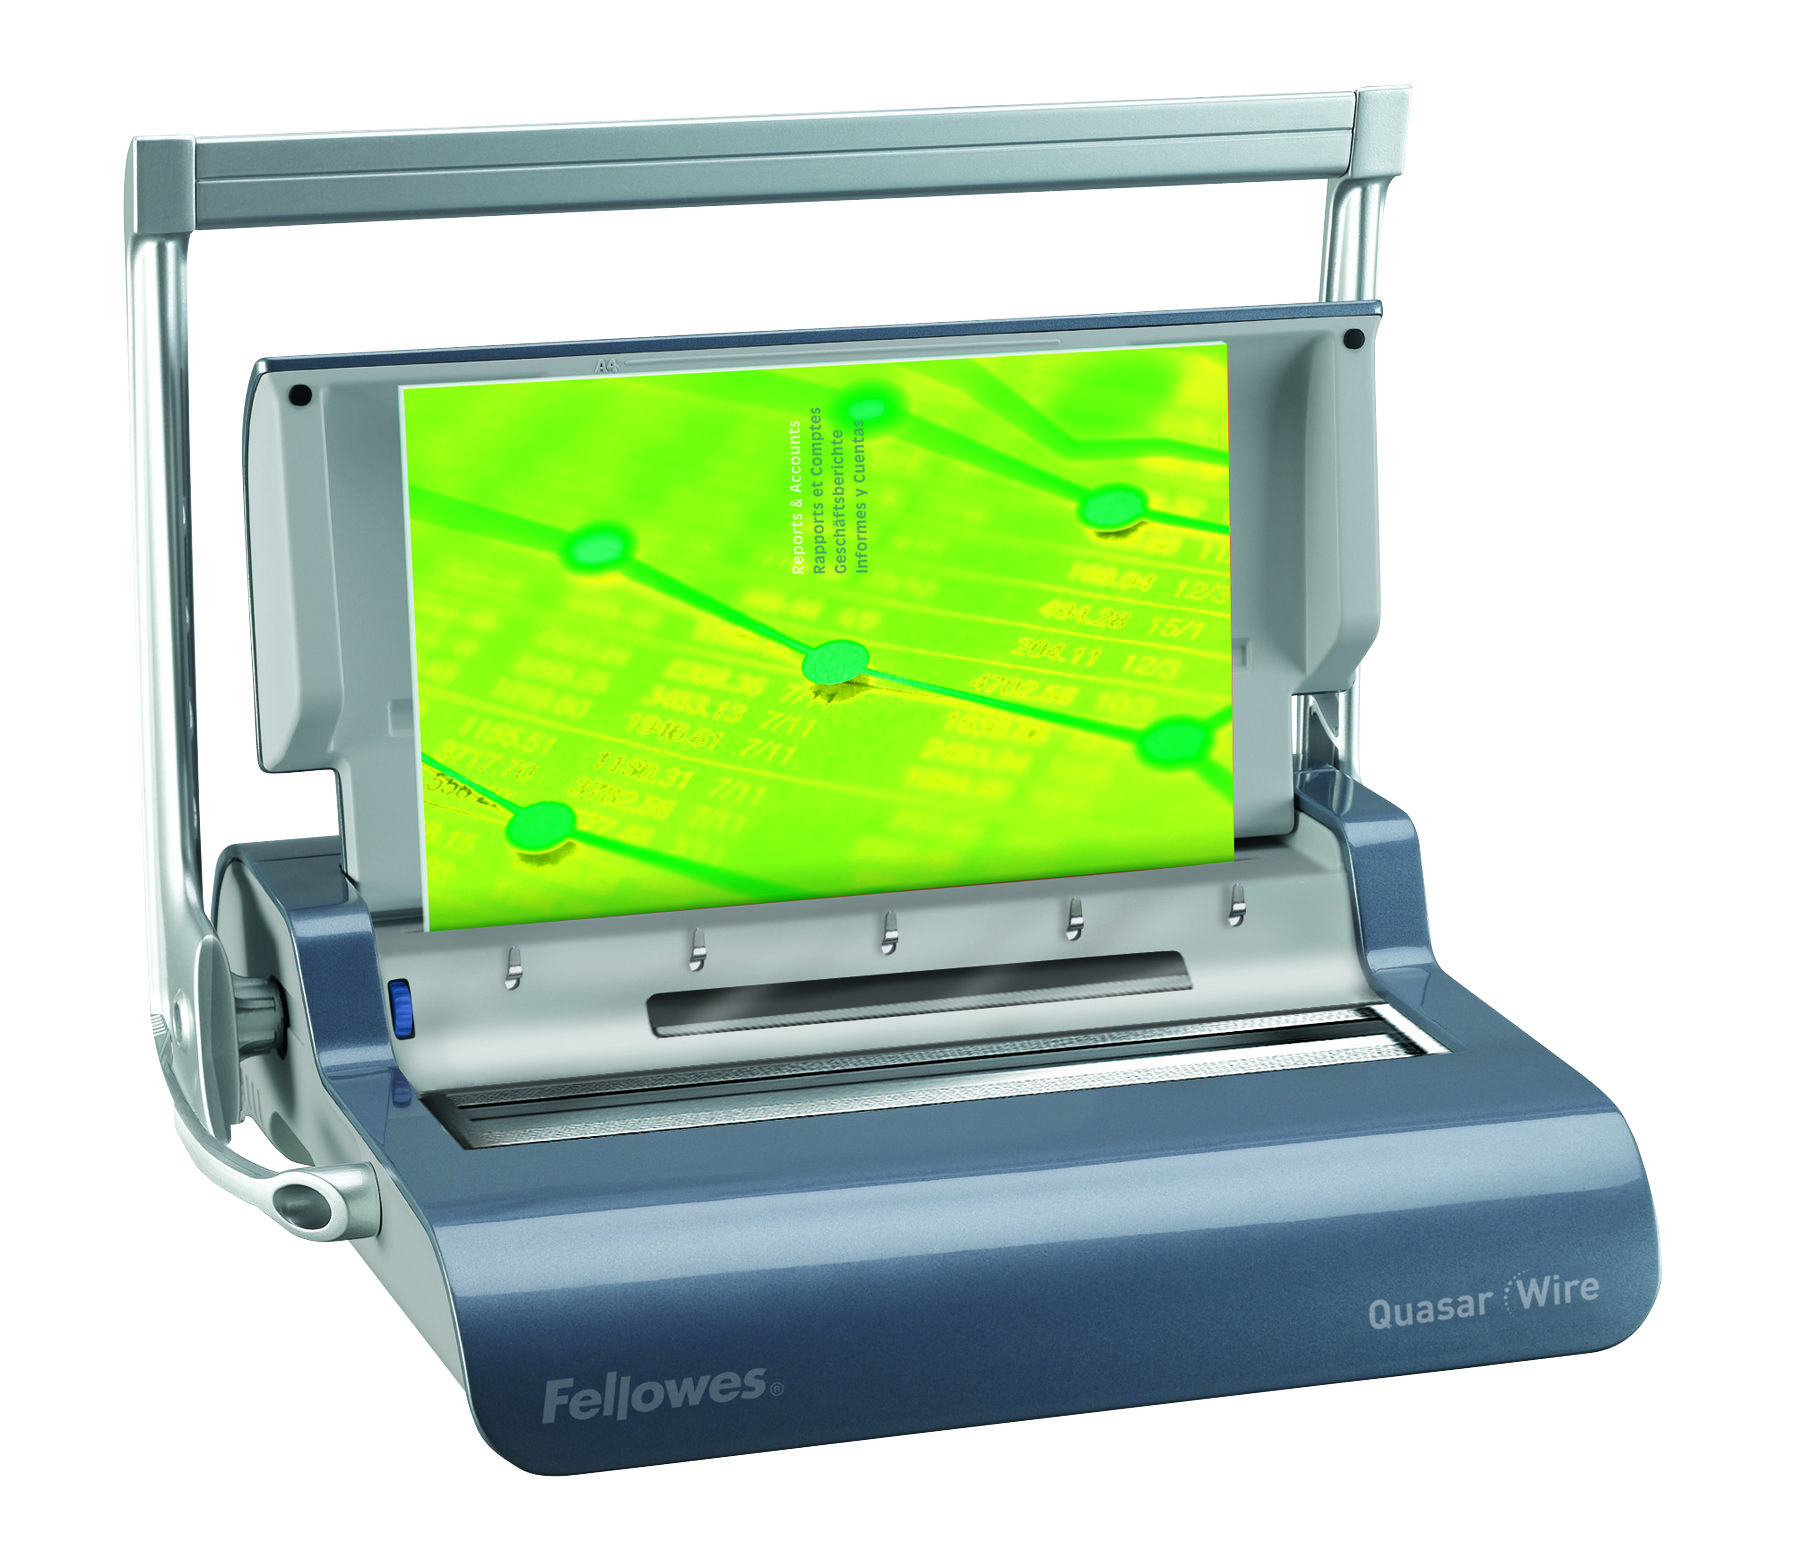 Image for Fellowes Quasar Mnl Wire Binding Machine